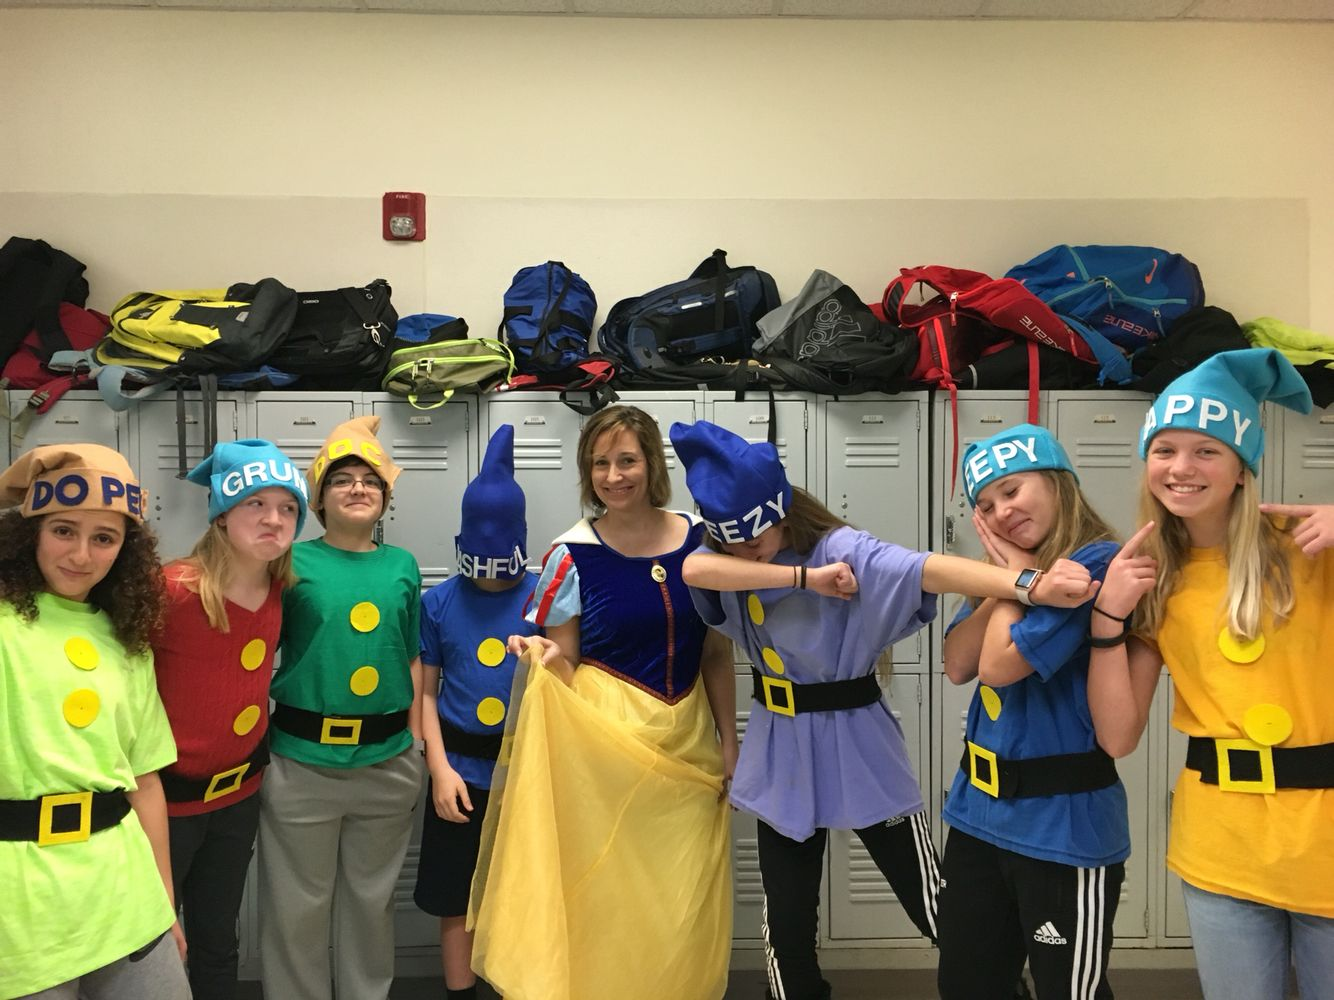 80dea12e36a The 7 Dwarves!!! So much fun for spirit week or any costume event ...